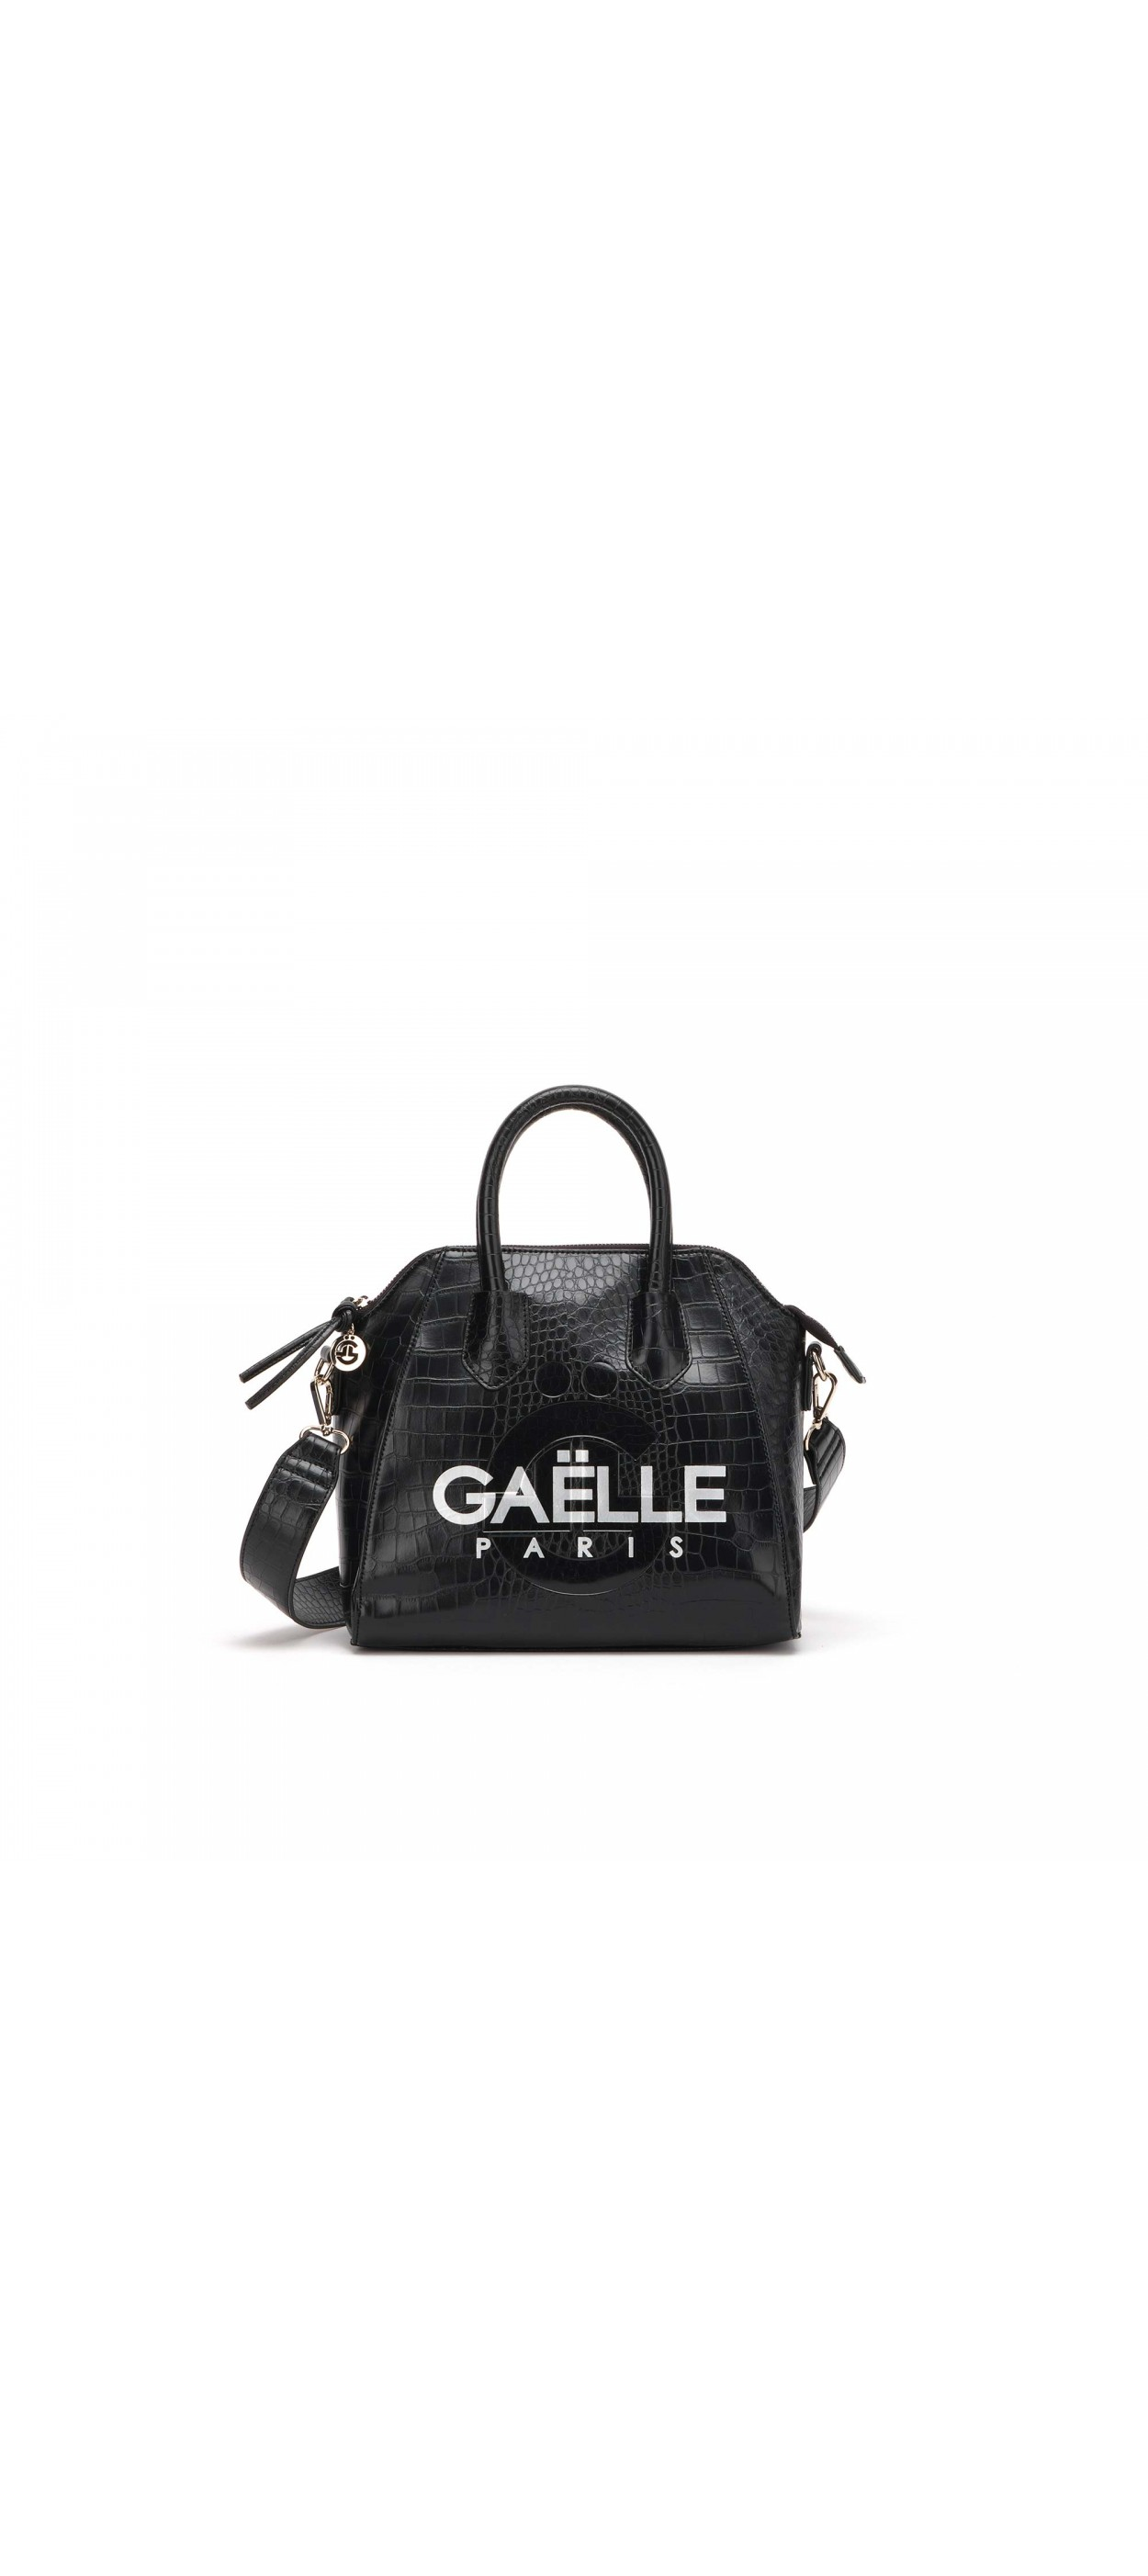 HAND BAG - GBDA2004 - GAELLE PARIS